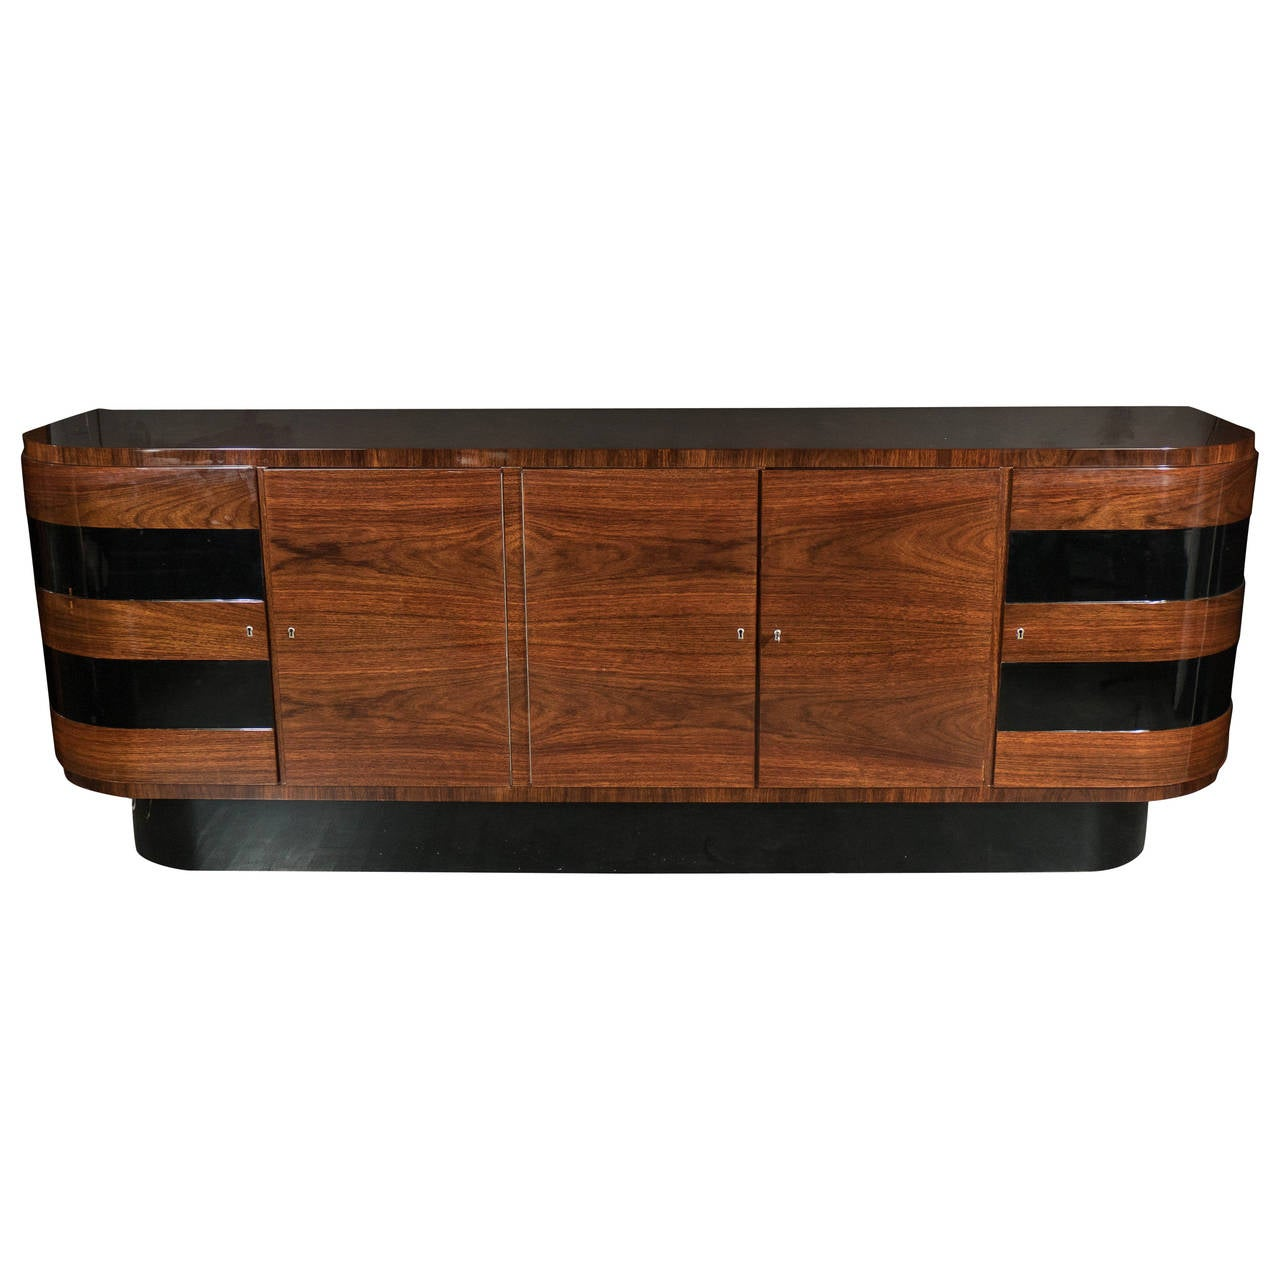 art deco sideboard by deutsche mobel in bookmatched